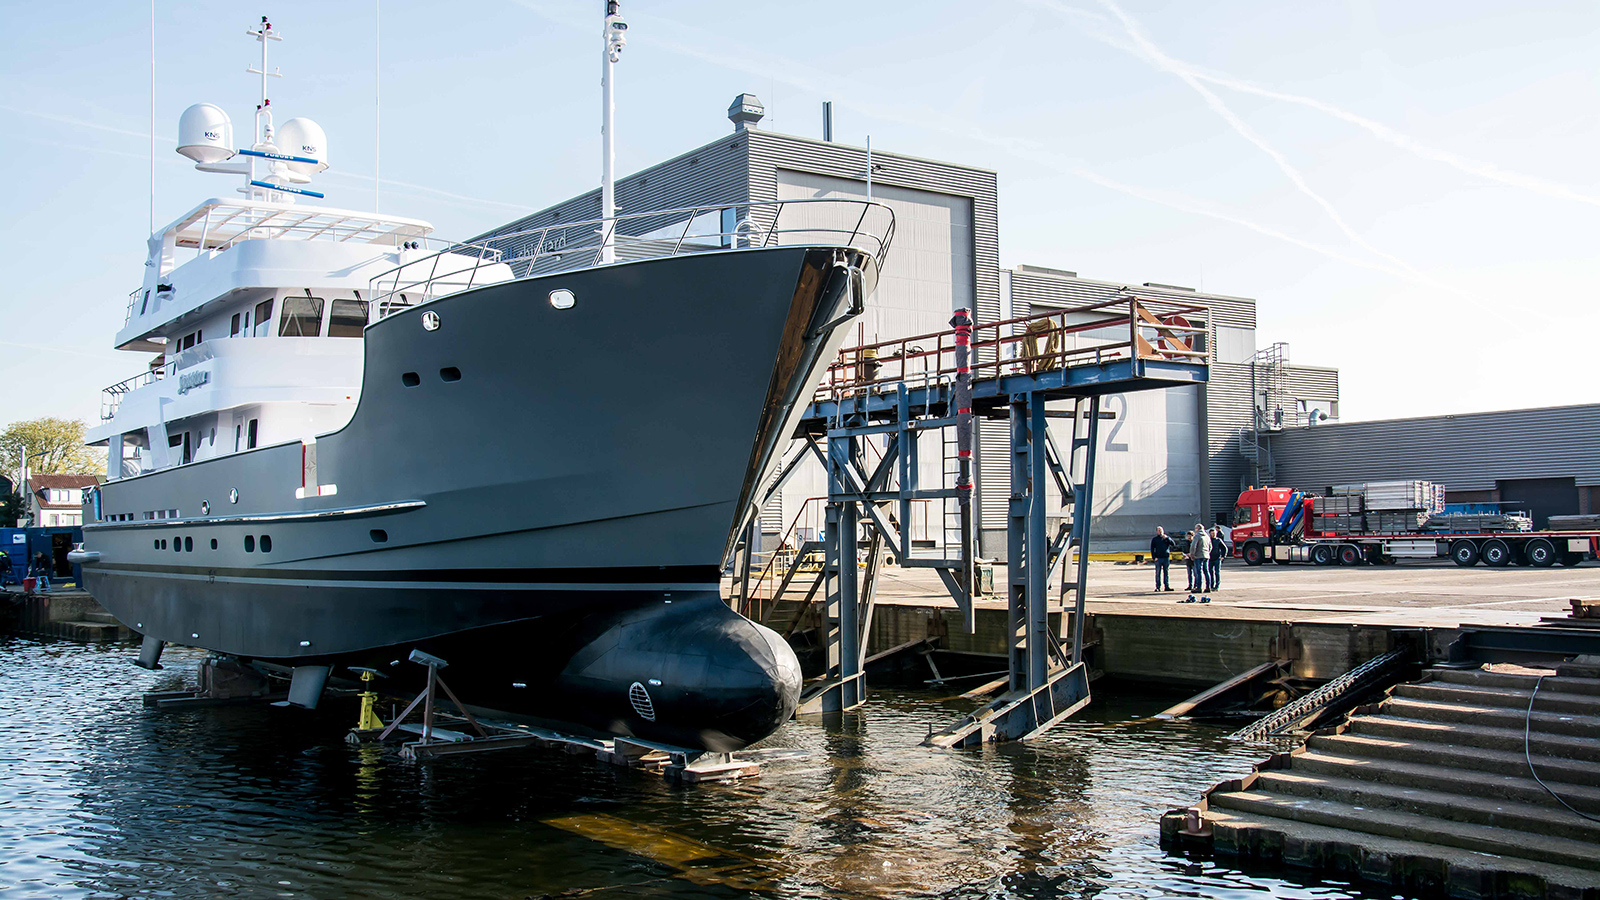 the-explorer-yacht-sandalphon-has-been-relaunched-at-balk-shipyard